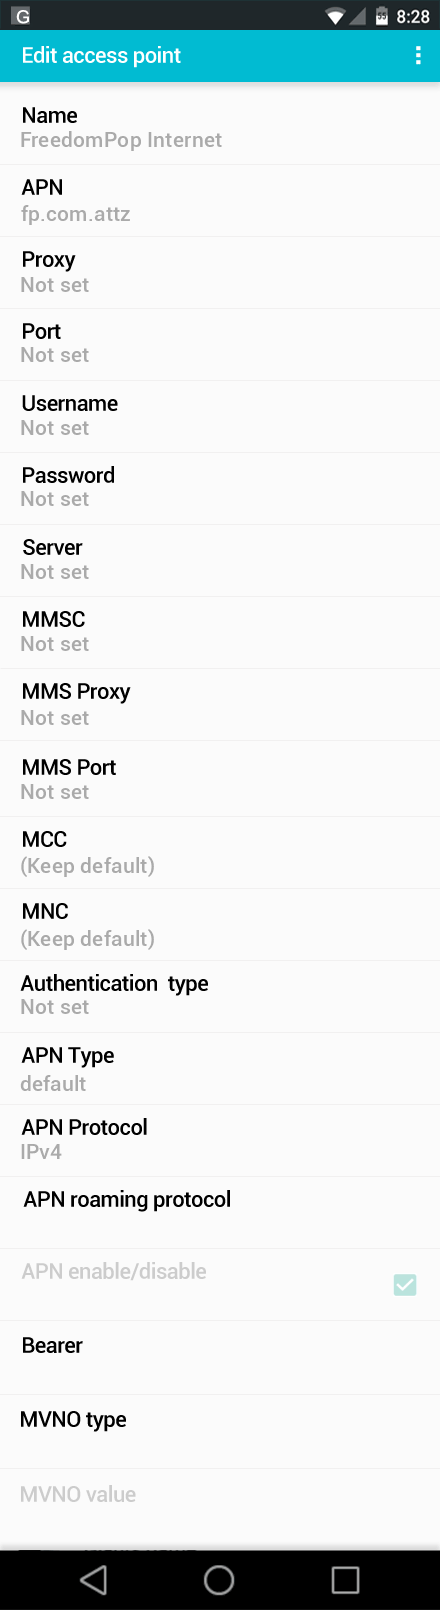 FreedomPop Internet APN settings for Android screenshot